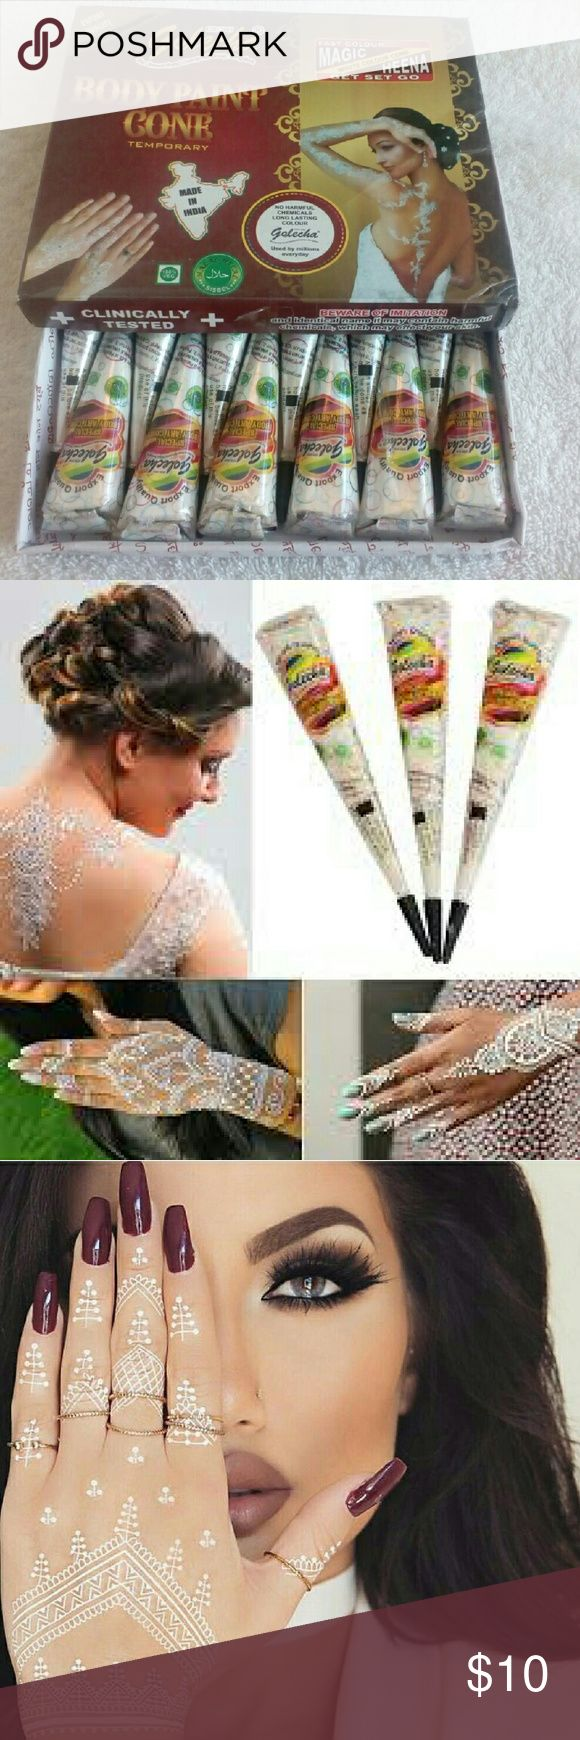 3 X25gm white henna body art tatoo ink You will receive 3 White Henna cones 100% authentic pure fresh natural henna paste.No chemicals/ppd/Ammonia  1.Before to apply clean your body parts well. 2.Take the cone and cut the tip small size as required for proper thickness of lines. 3.Draw designs by your hand in required body parts like as a pen or just from .25 inch from the area. 4.If you need perfect designs you can use stencils  5.remove the dried henna. Note: white Henna used for…